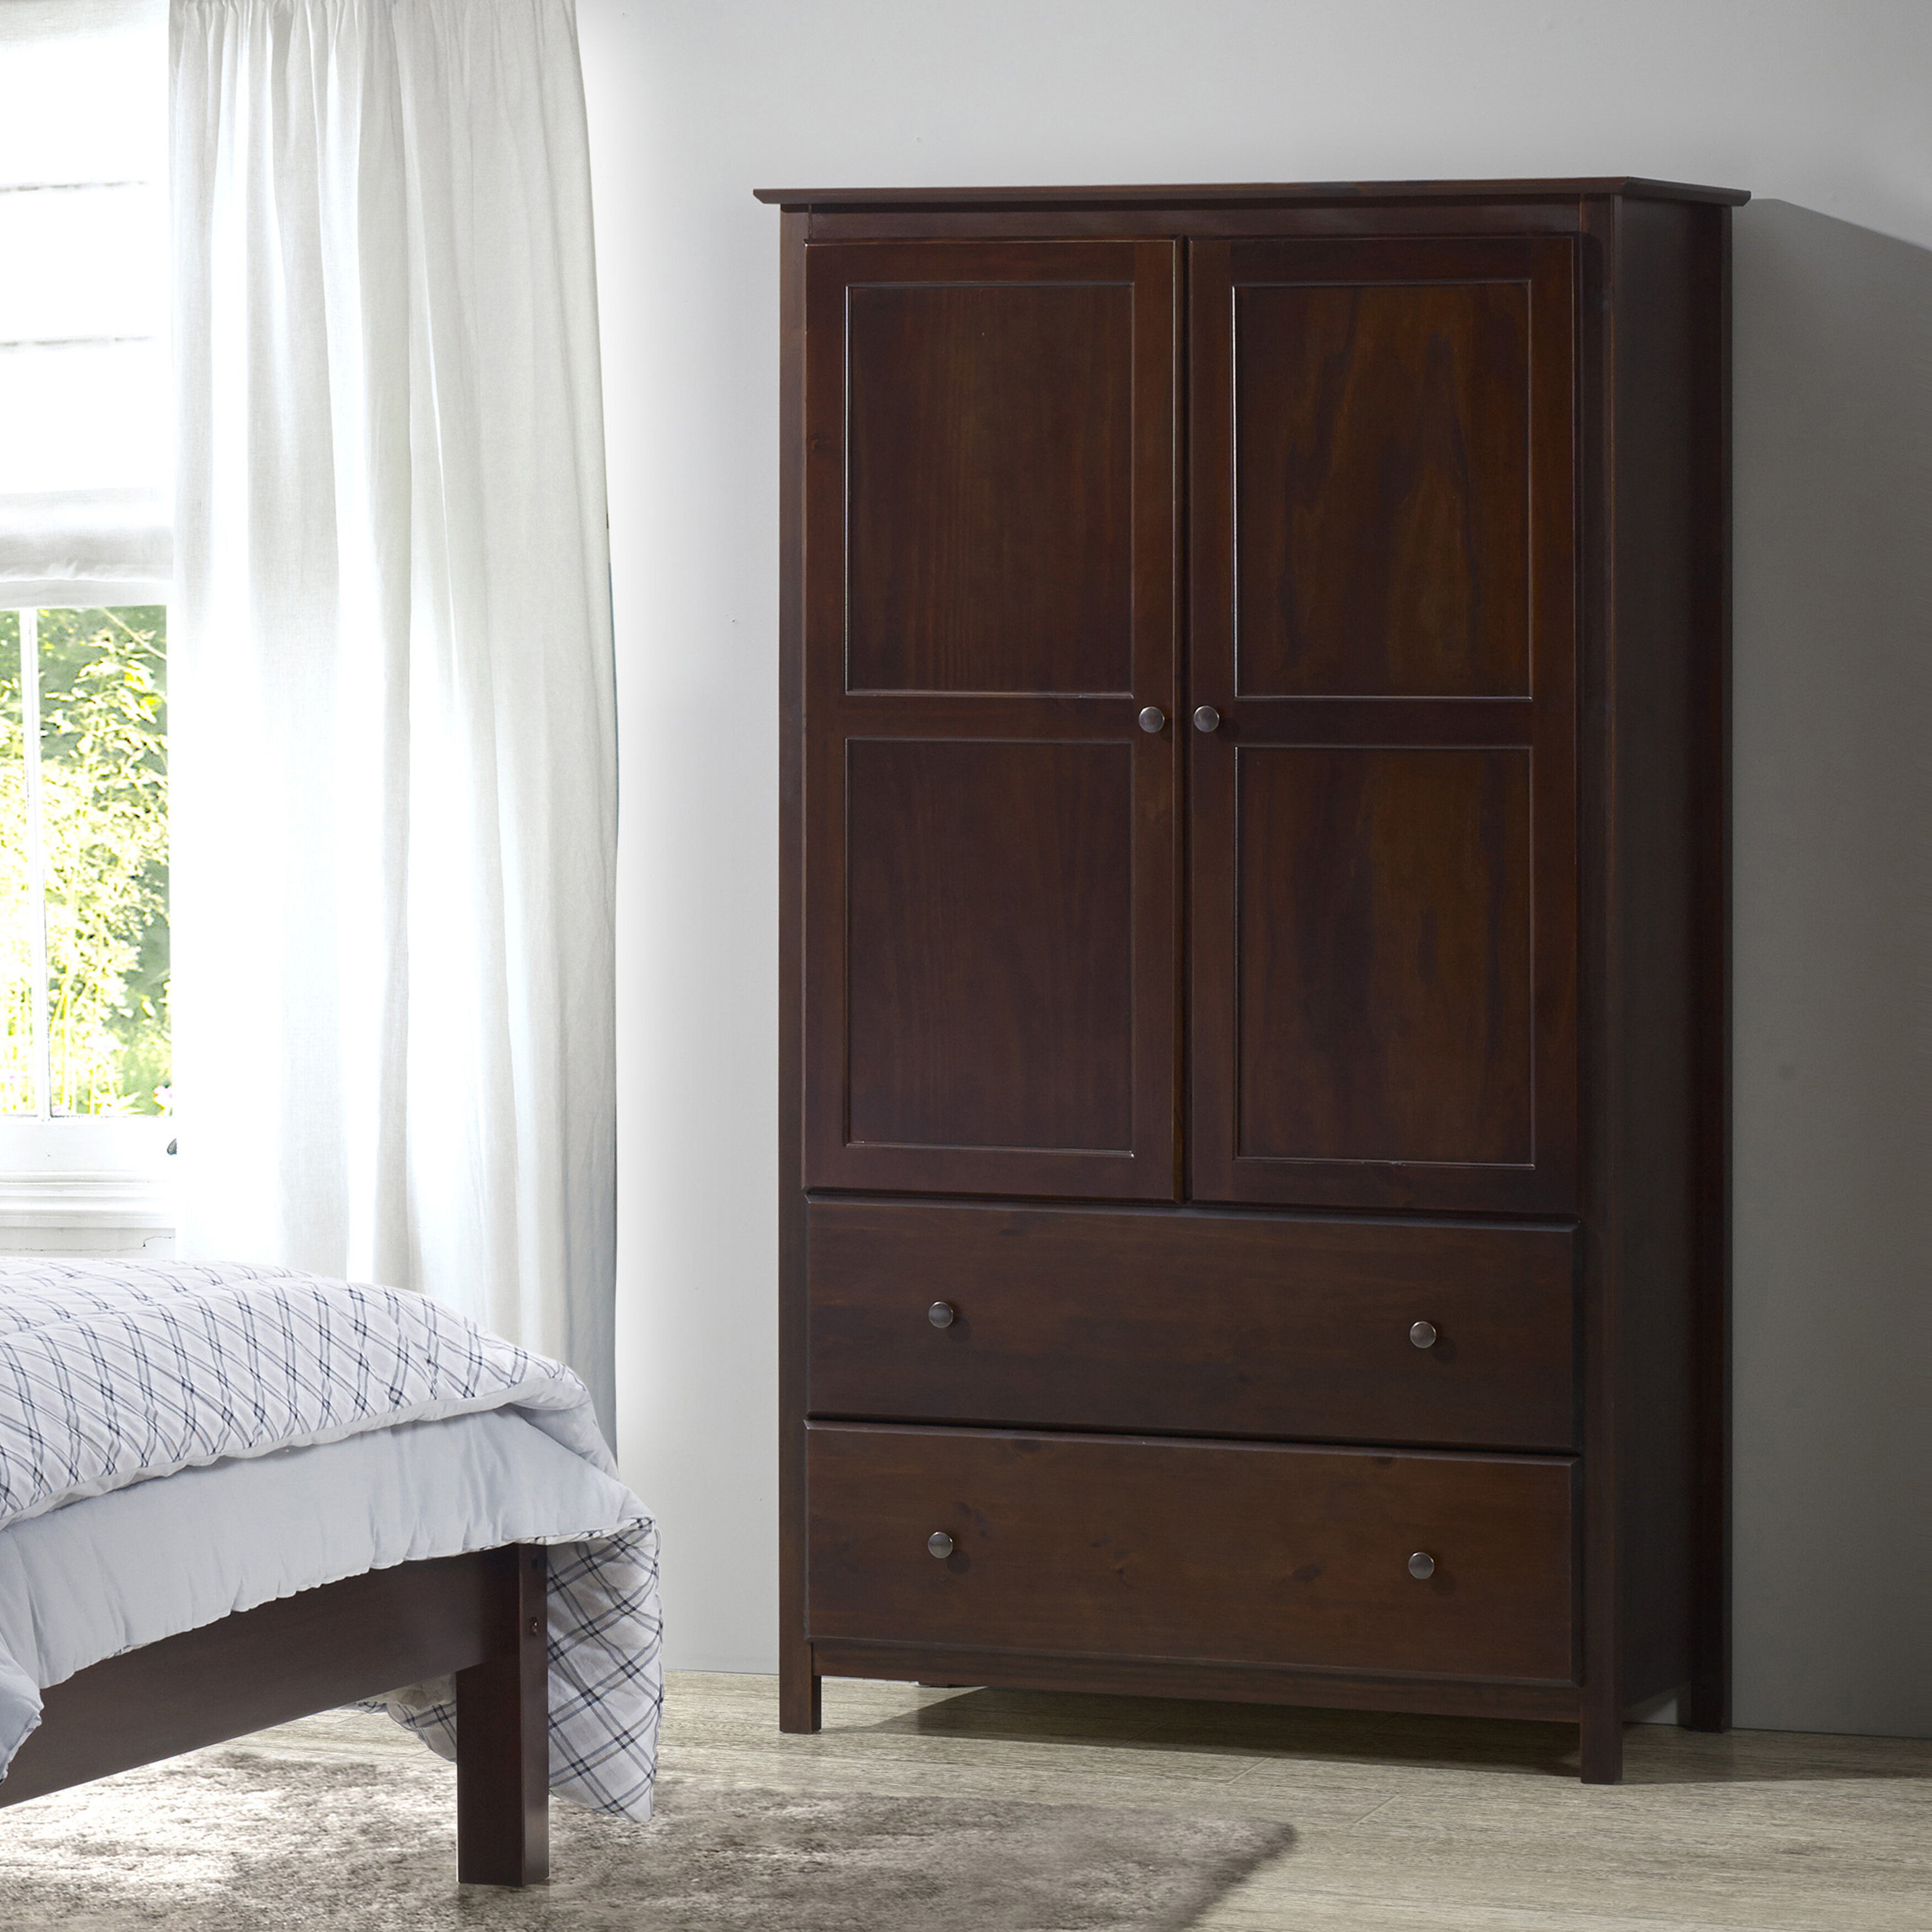 night american amish style stunning stand oak furniture bedroom picture also ideas panel bed lane shaker barrister